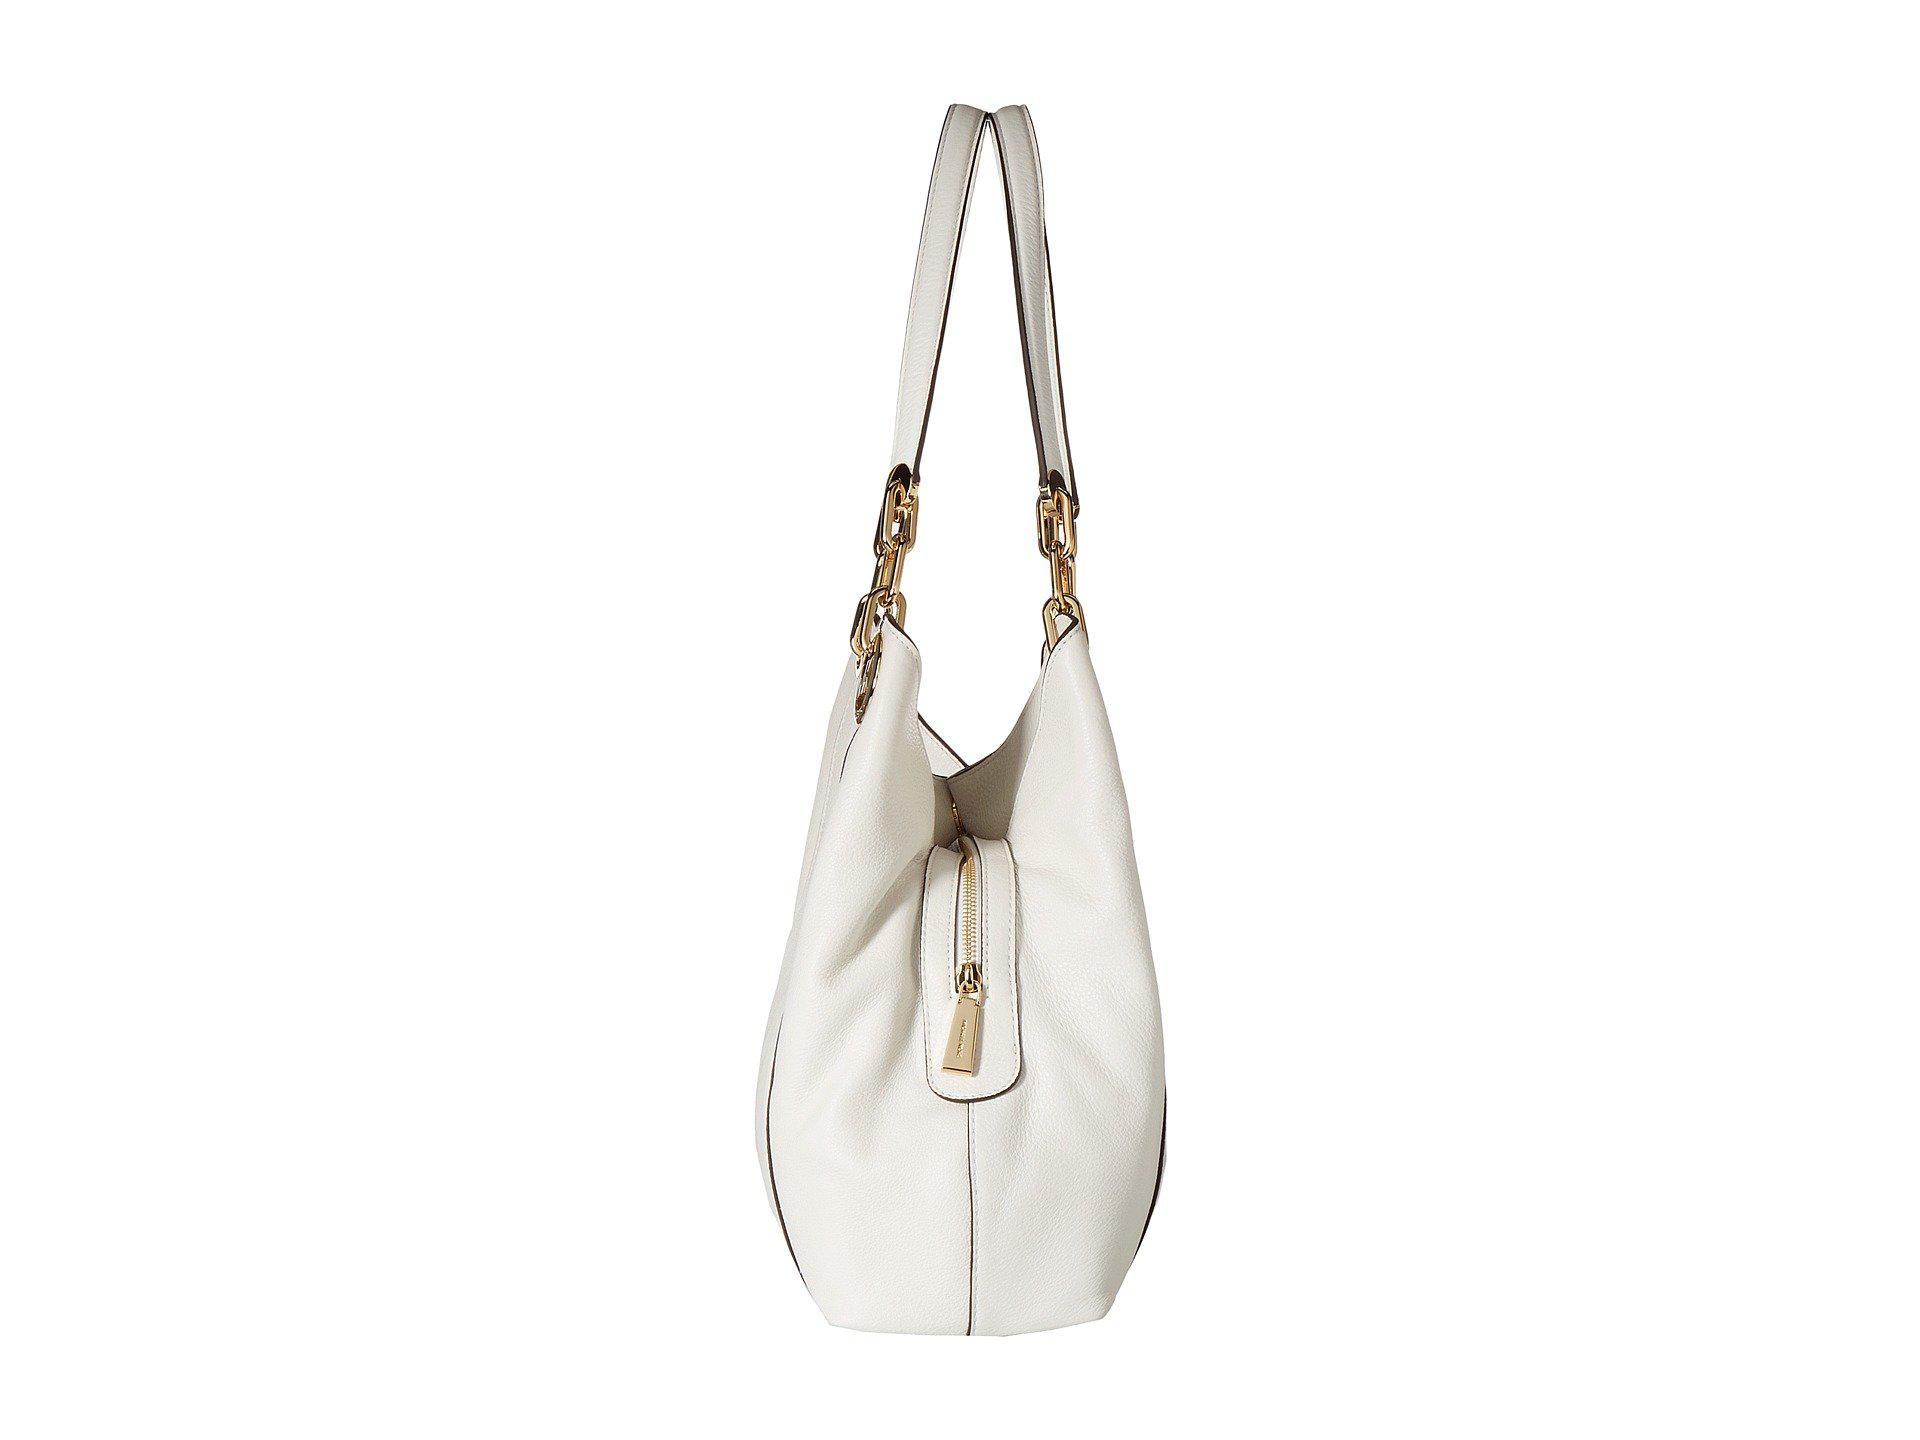 98db75fc828f MICHAEL Michael Kors Fulton Large Charm Shoulder Tote in White - Lyst